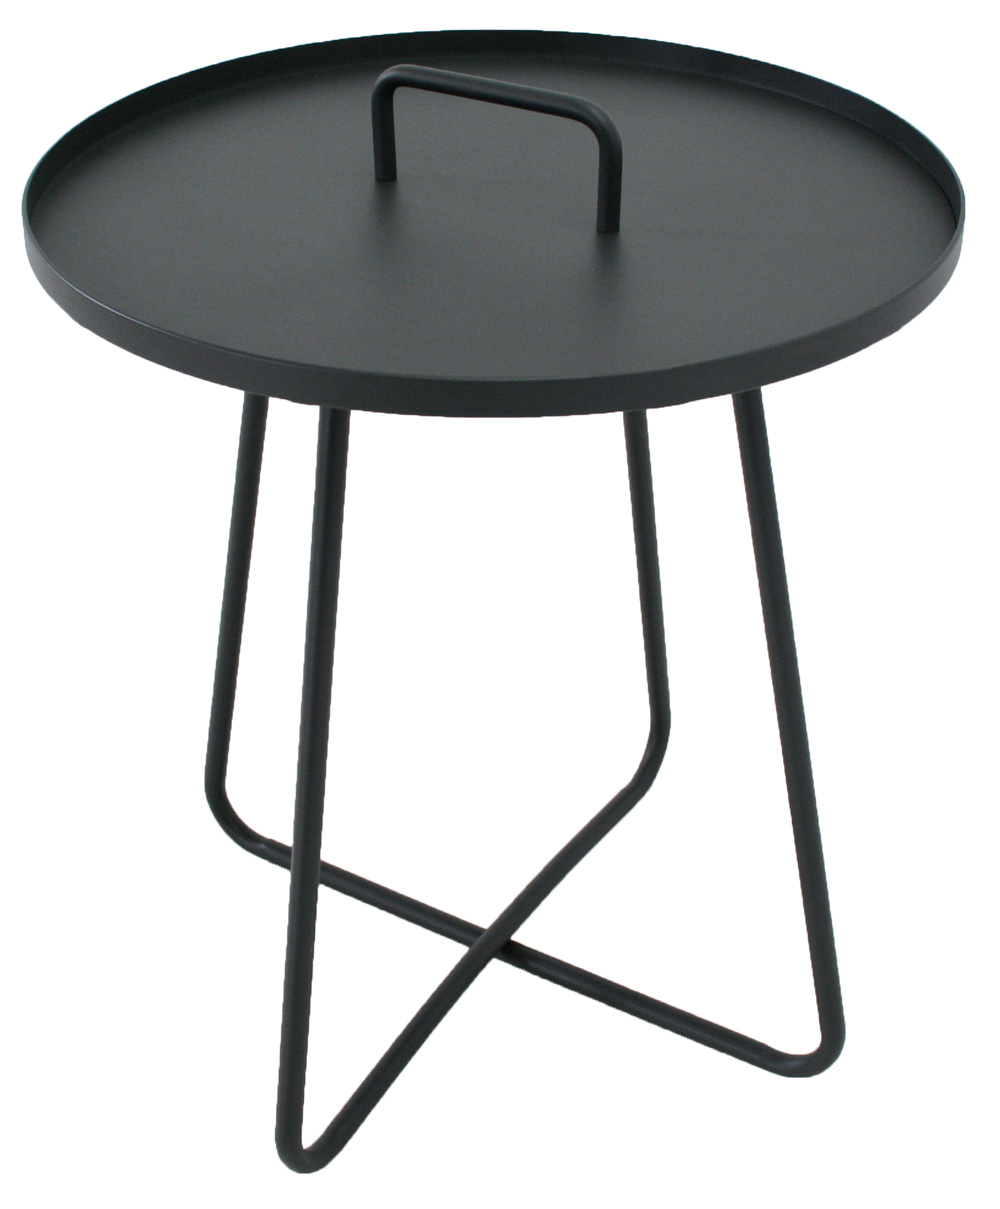 <BIG><B>Table de service Jennifer anthracite</B></BIG>